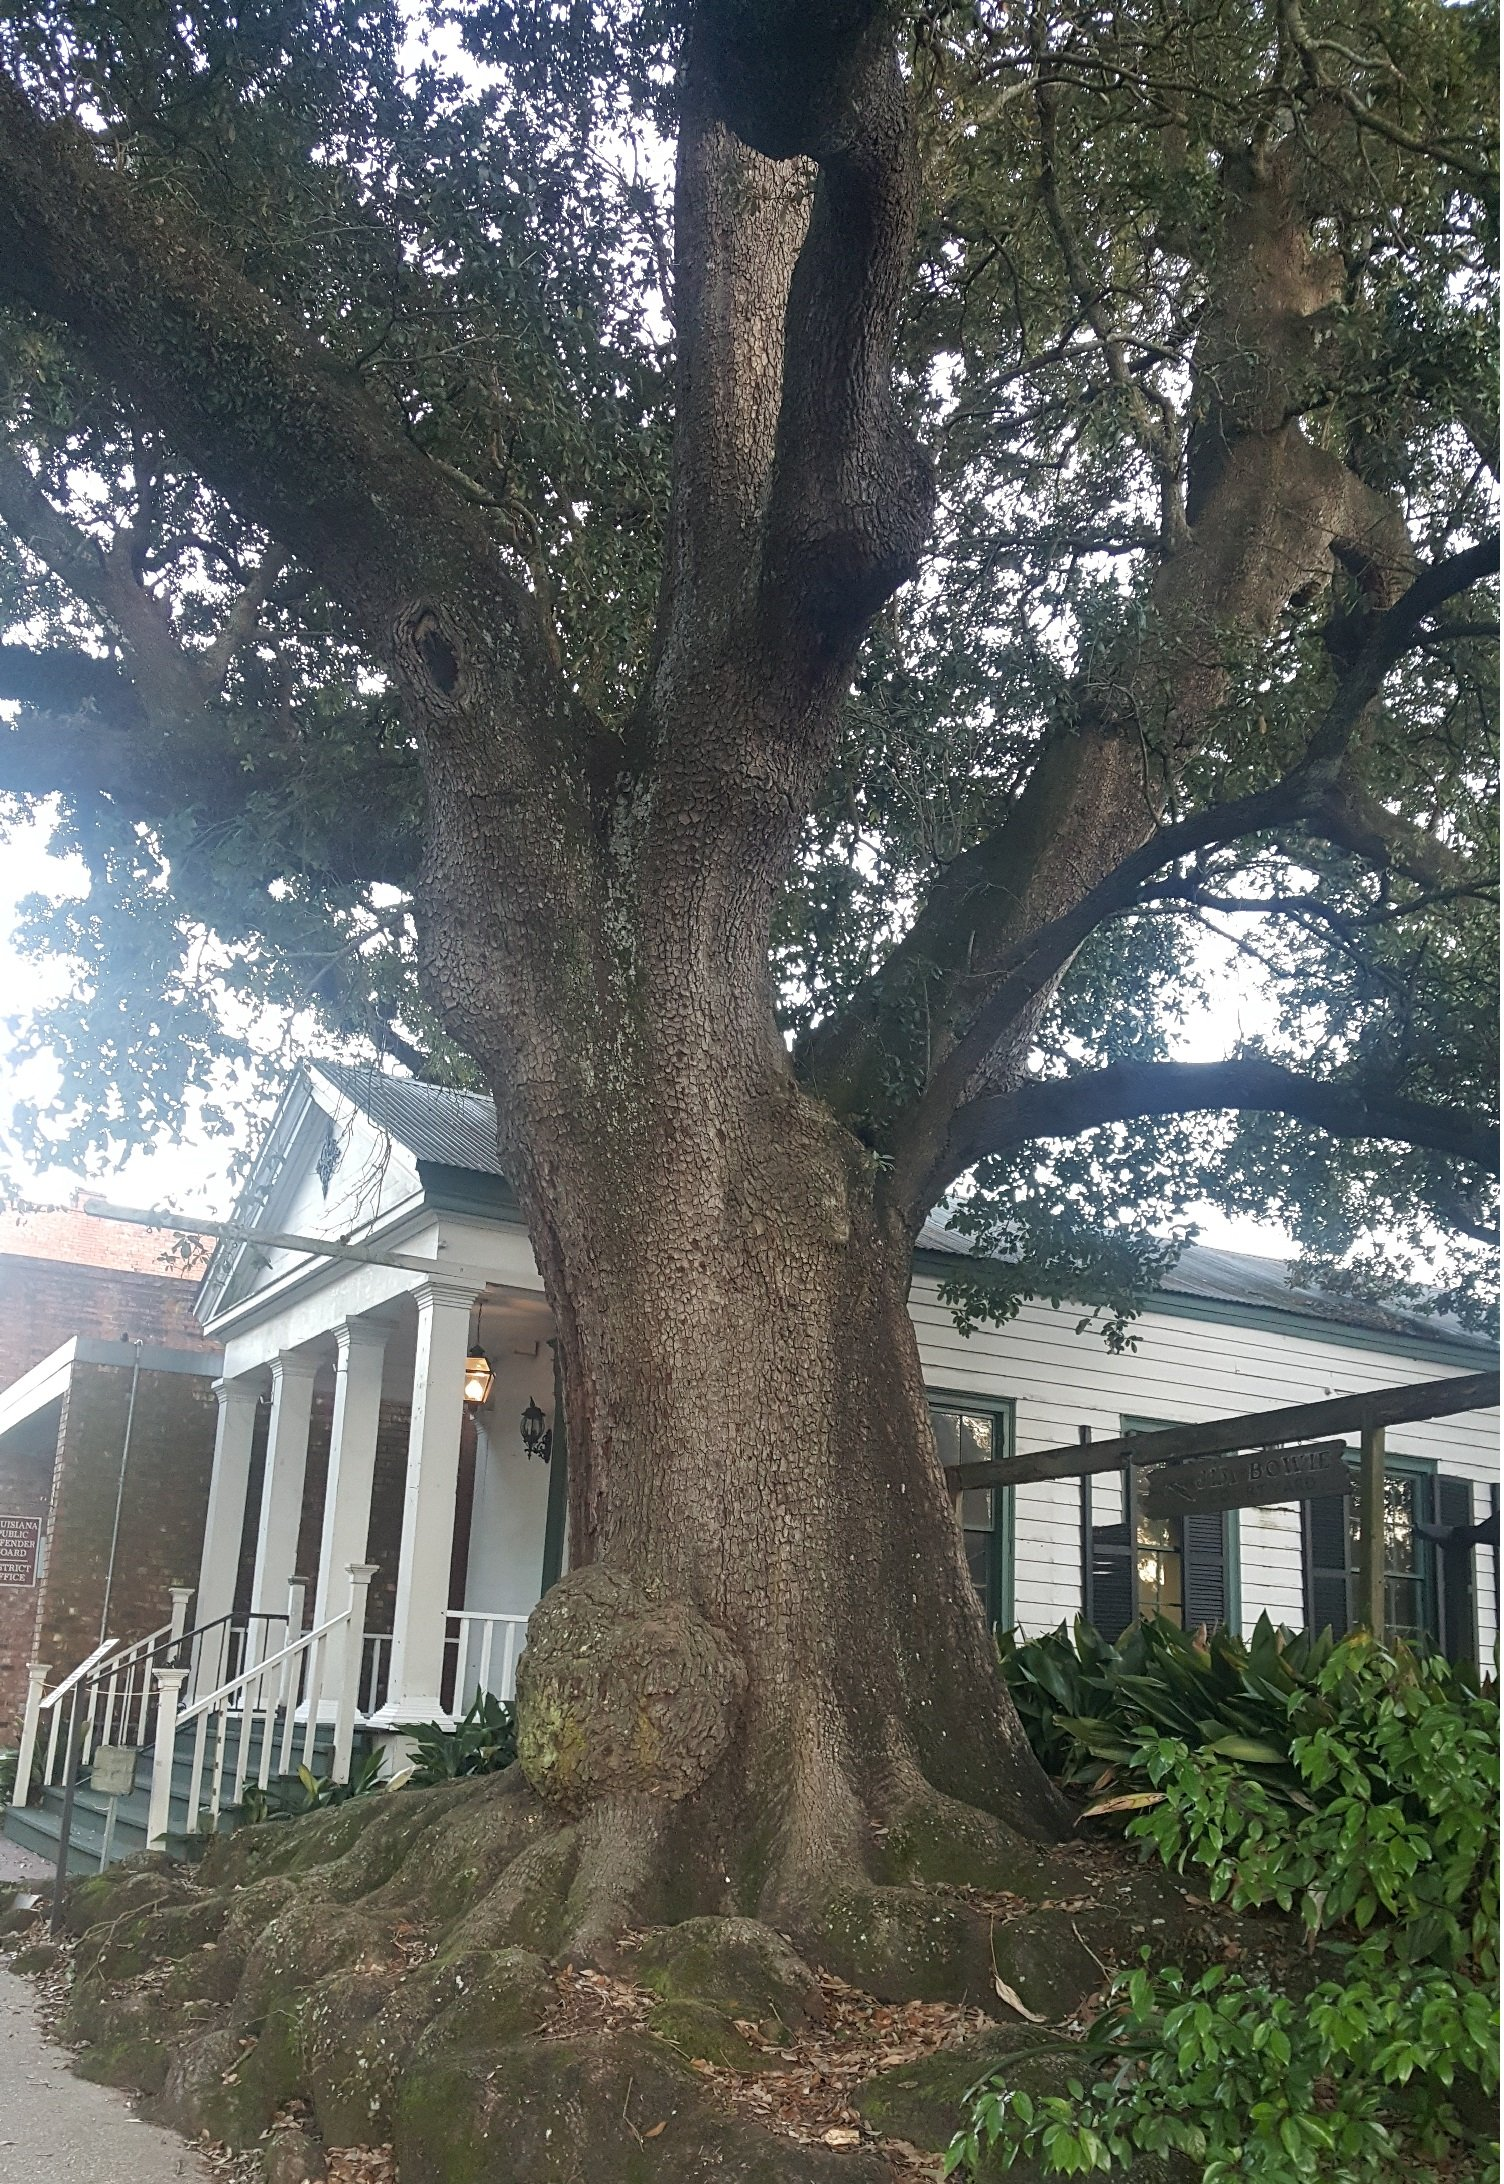 """Wider shot of the tree, featuring the former """"Jim Bowie House""""."""